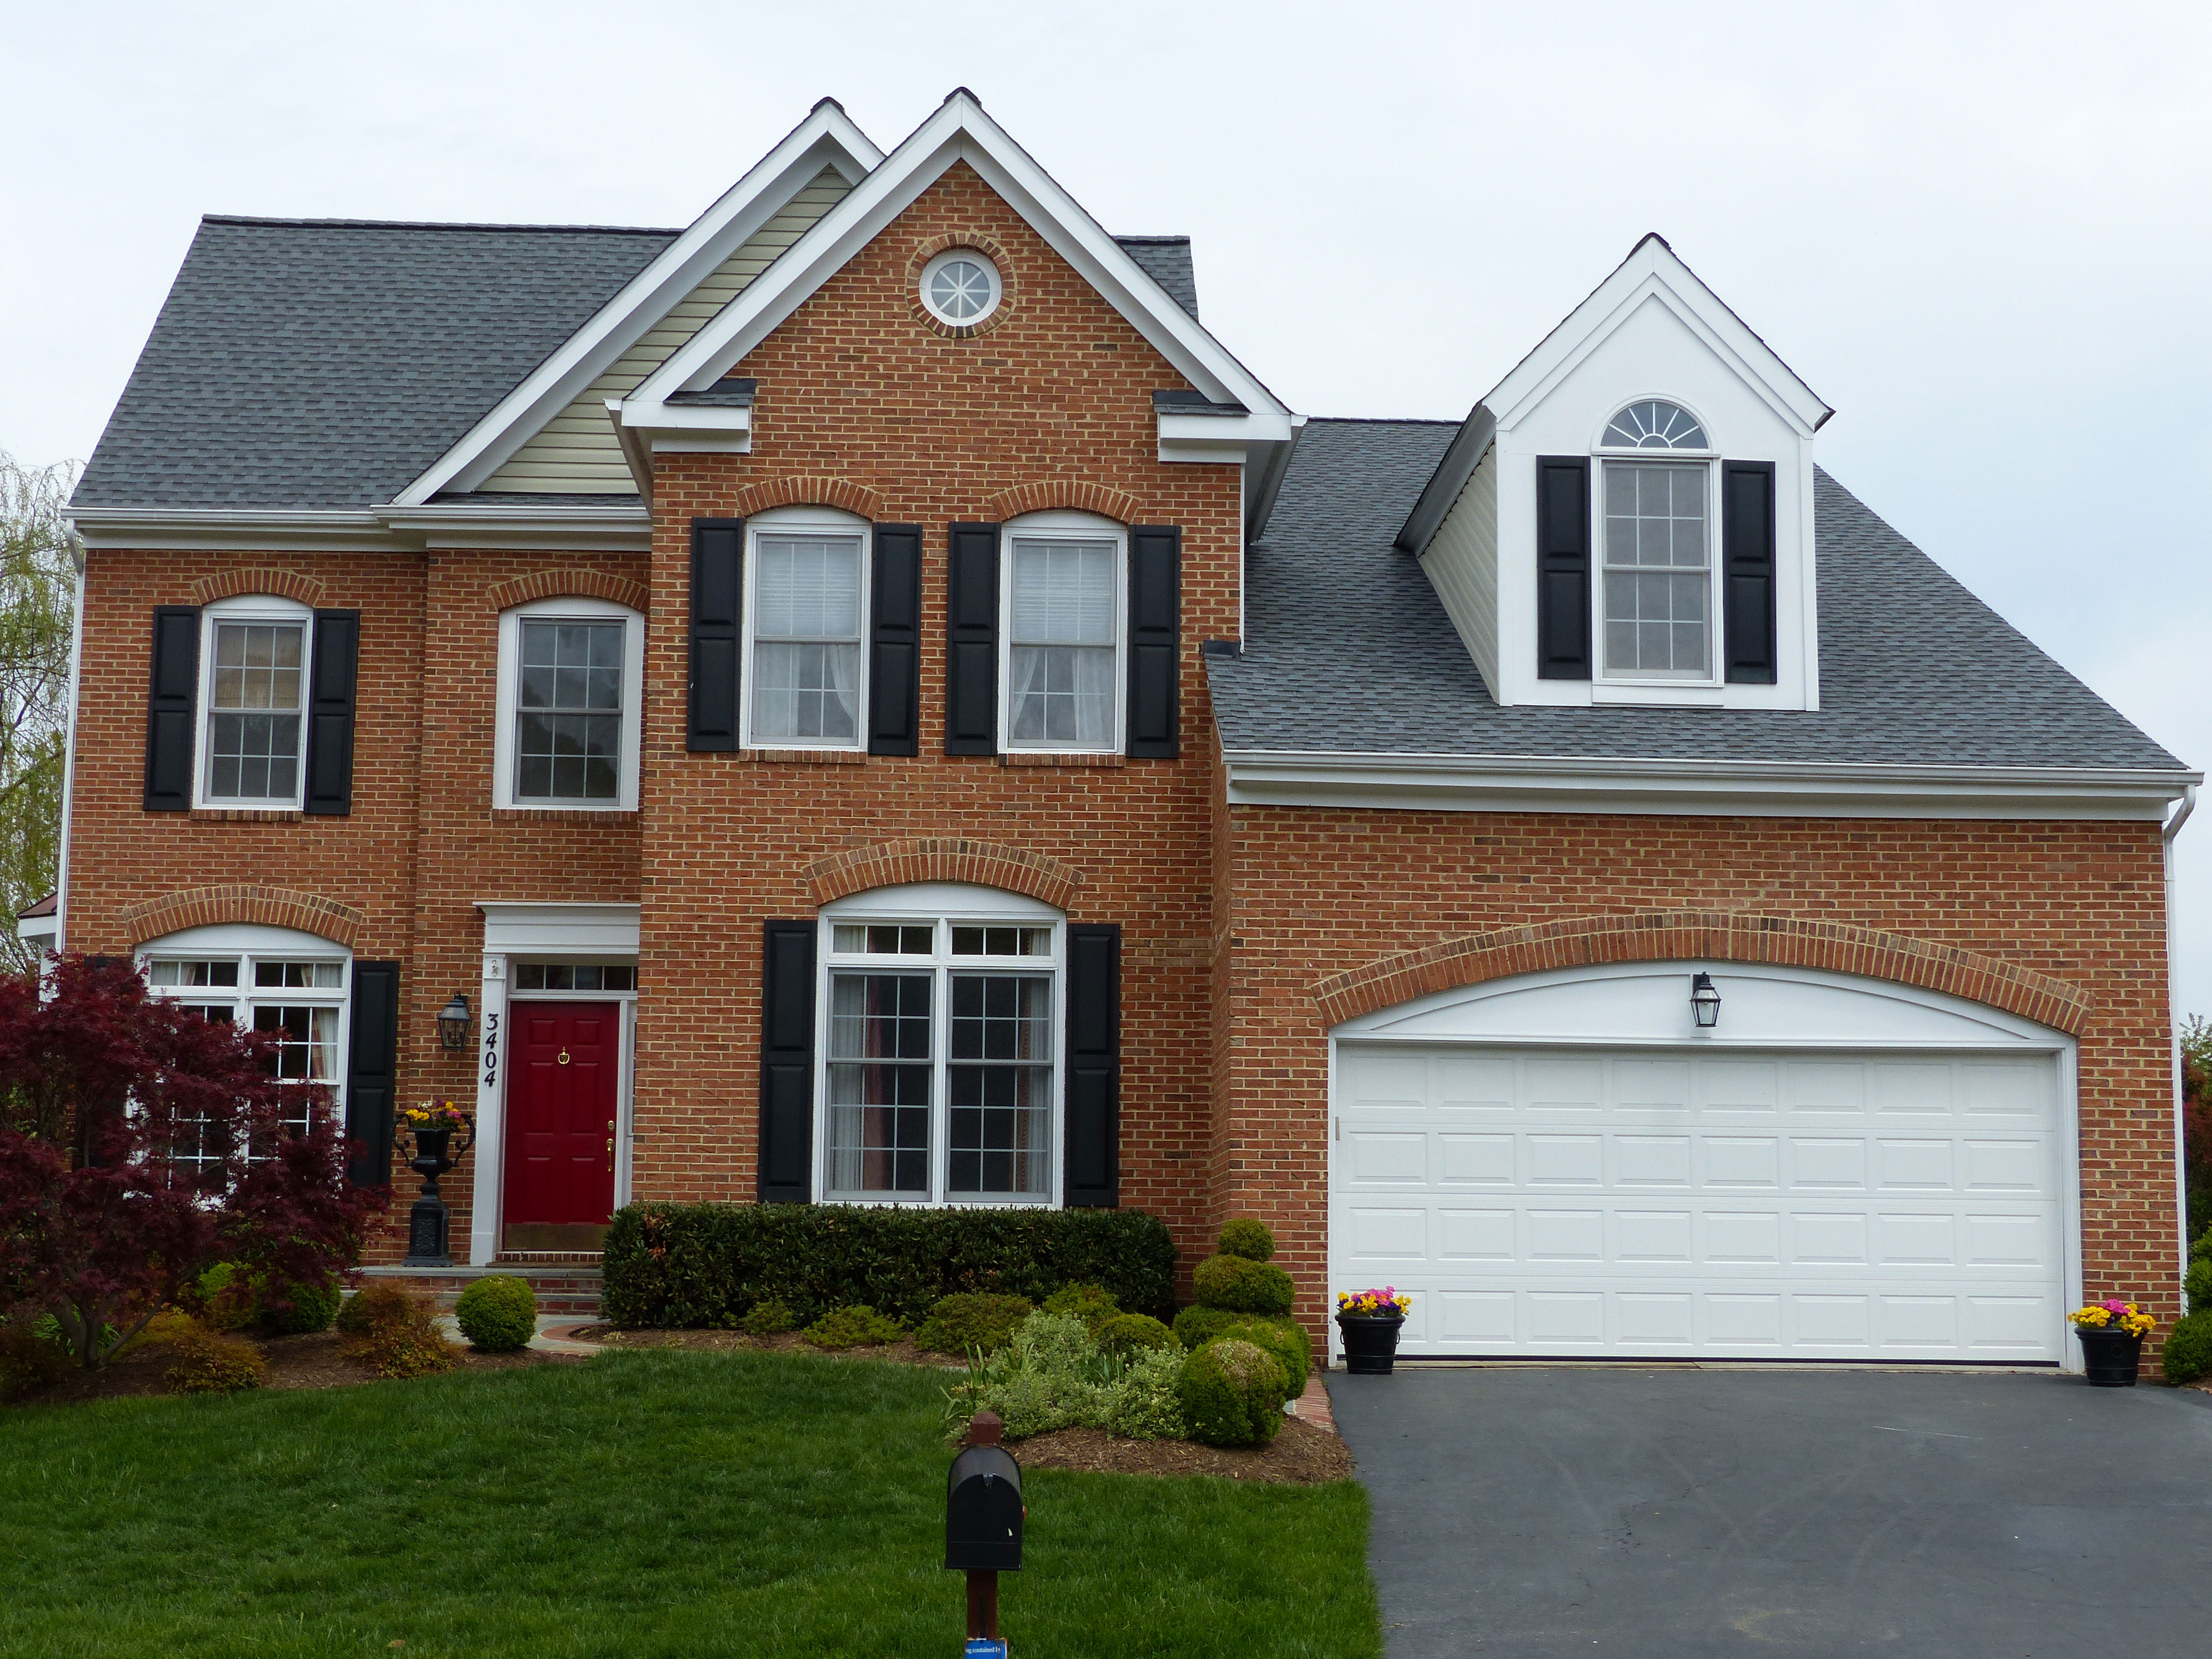 When Perusing Manufacturers The Style Of Roof On Your Home Whether Located In Fairfax Prince William Or Loudoun County Should Also Be Considered And How